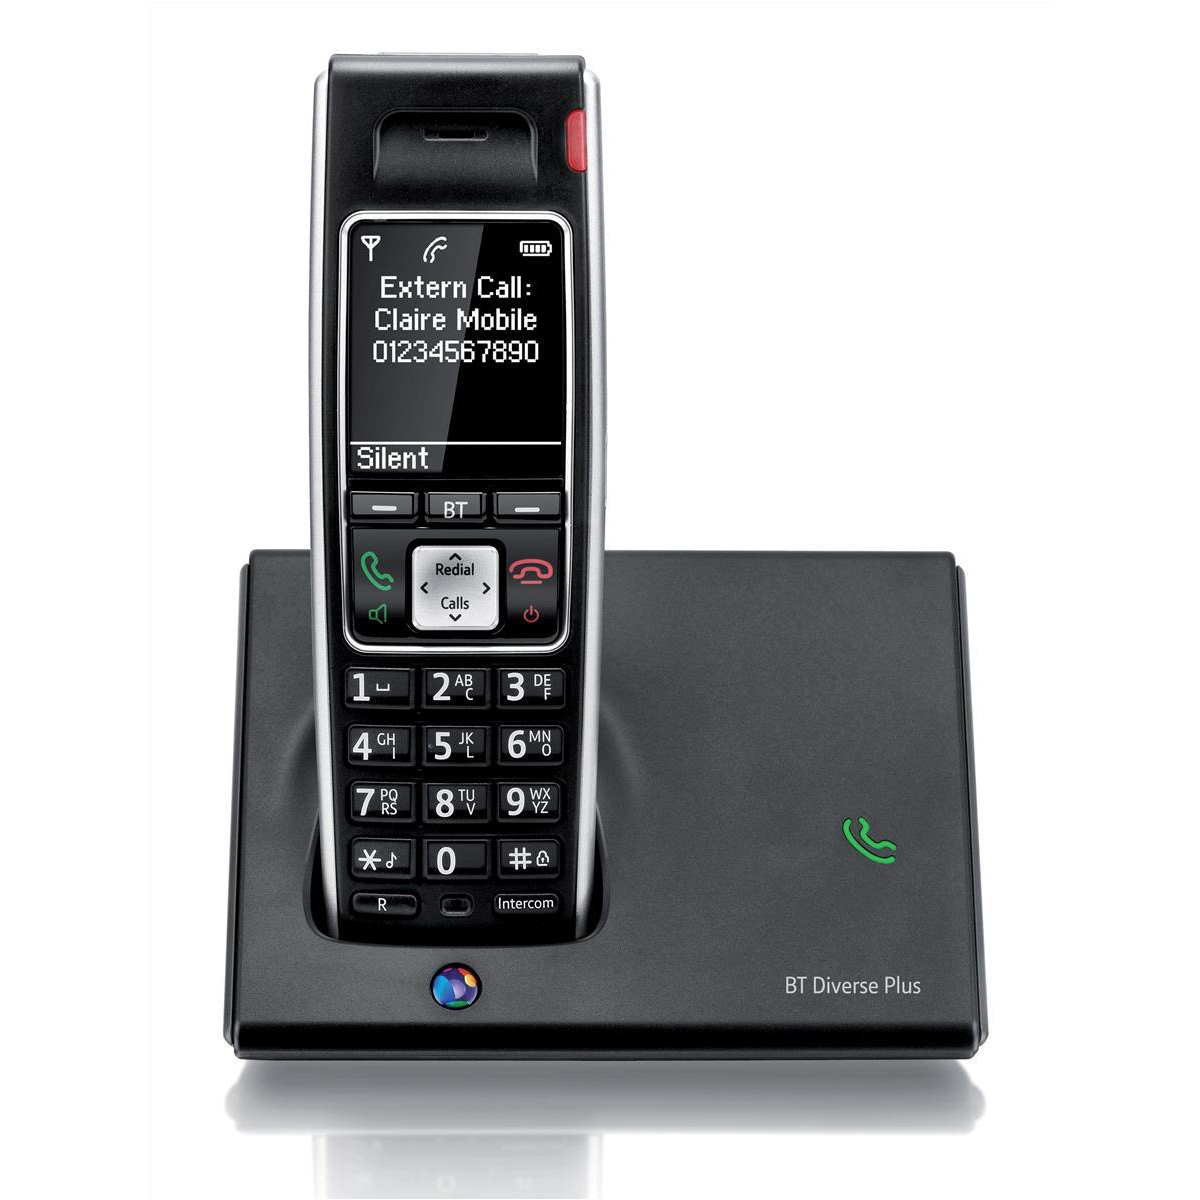 BT Diverse 7410 Plus DECT Telephone Cordless SMS 200-entry Directory 10 Calls List Ref 060745